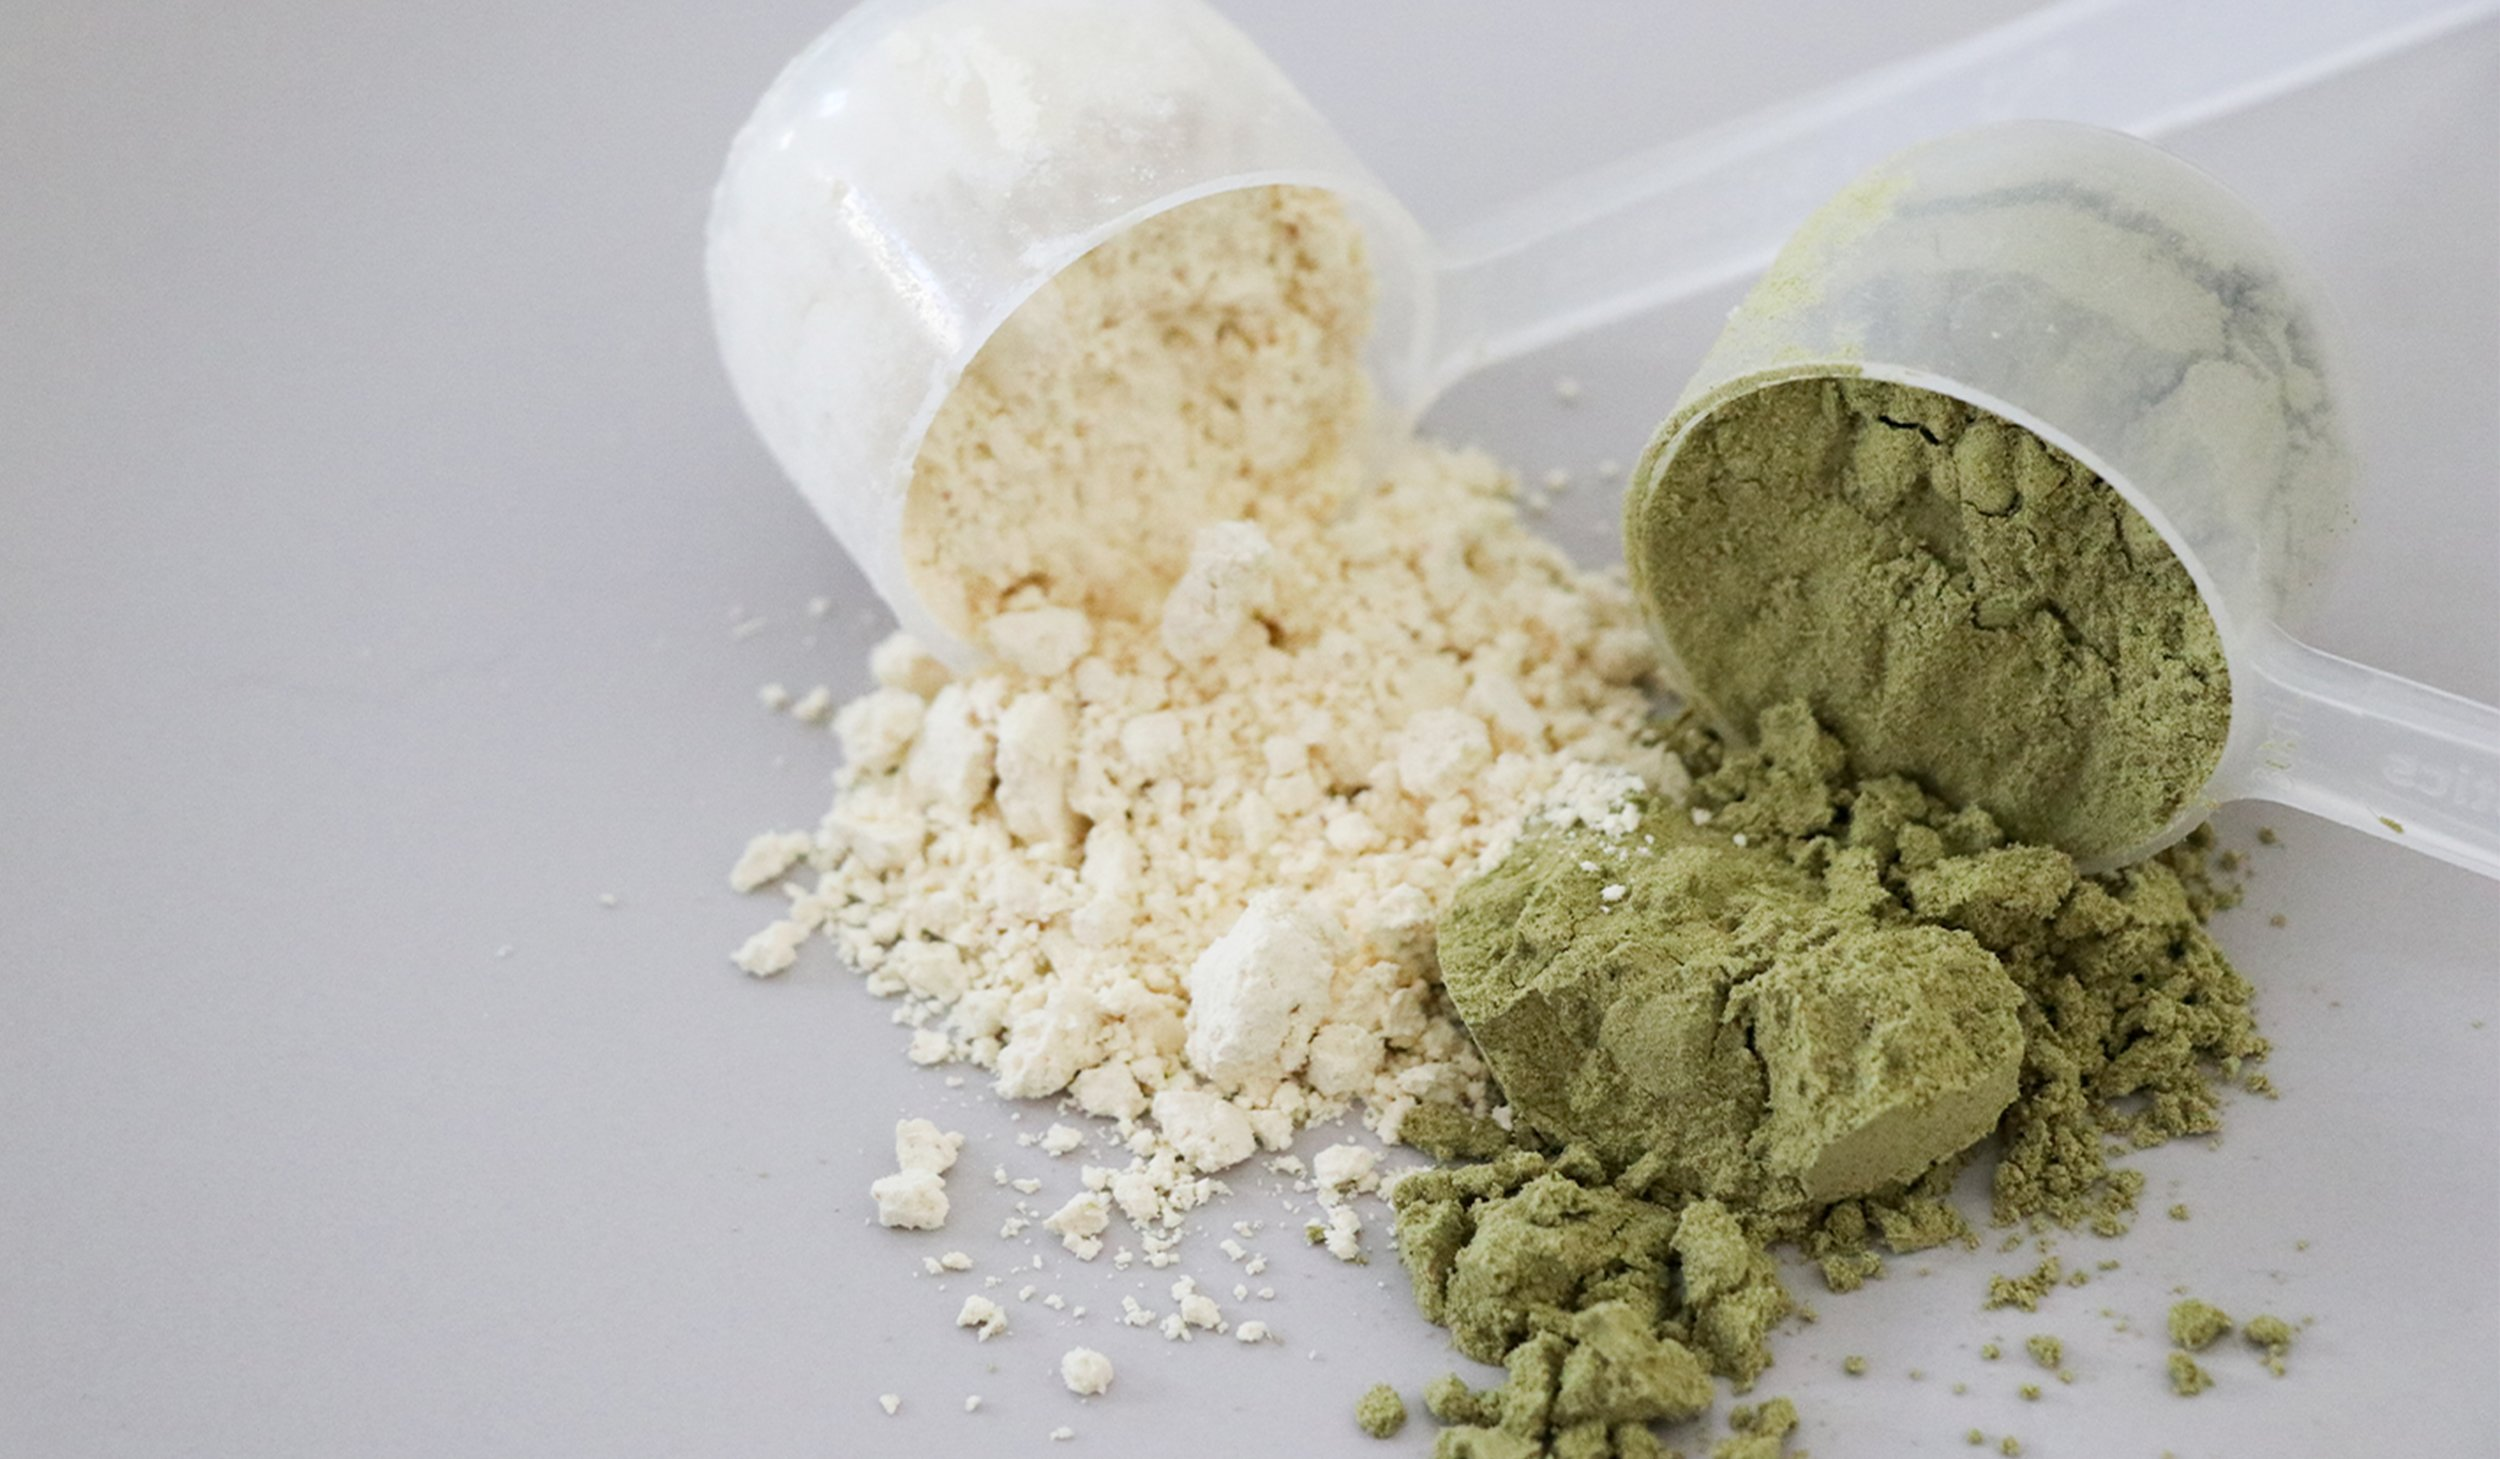 You can get almost anything in supplement form - from protein to greens.